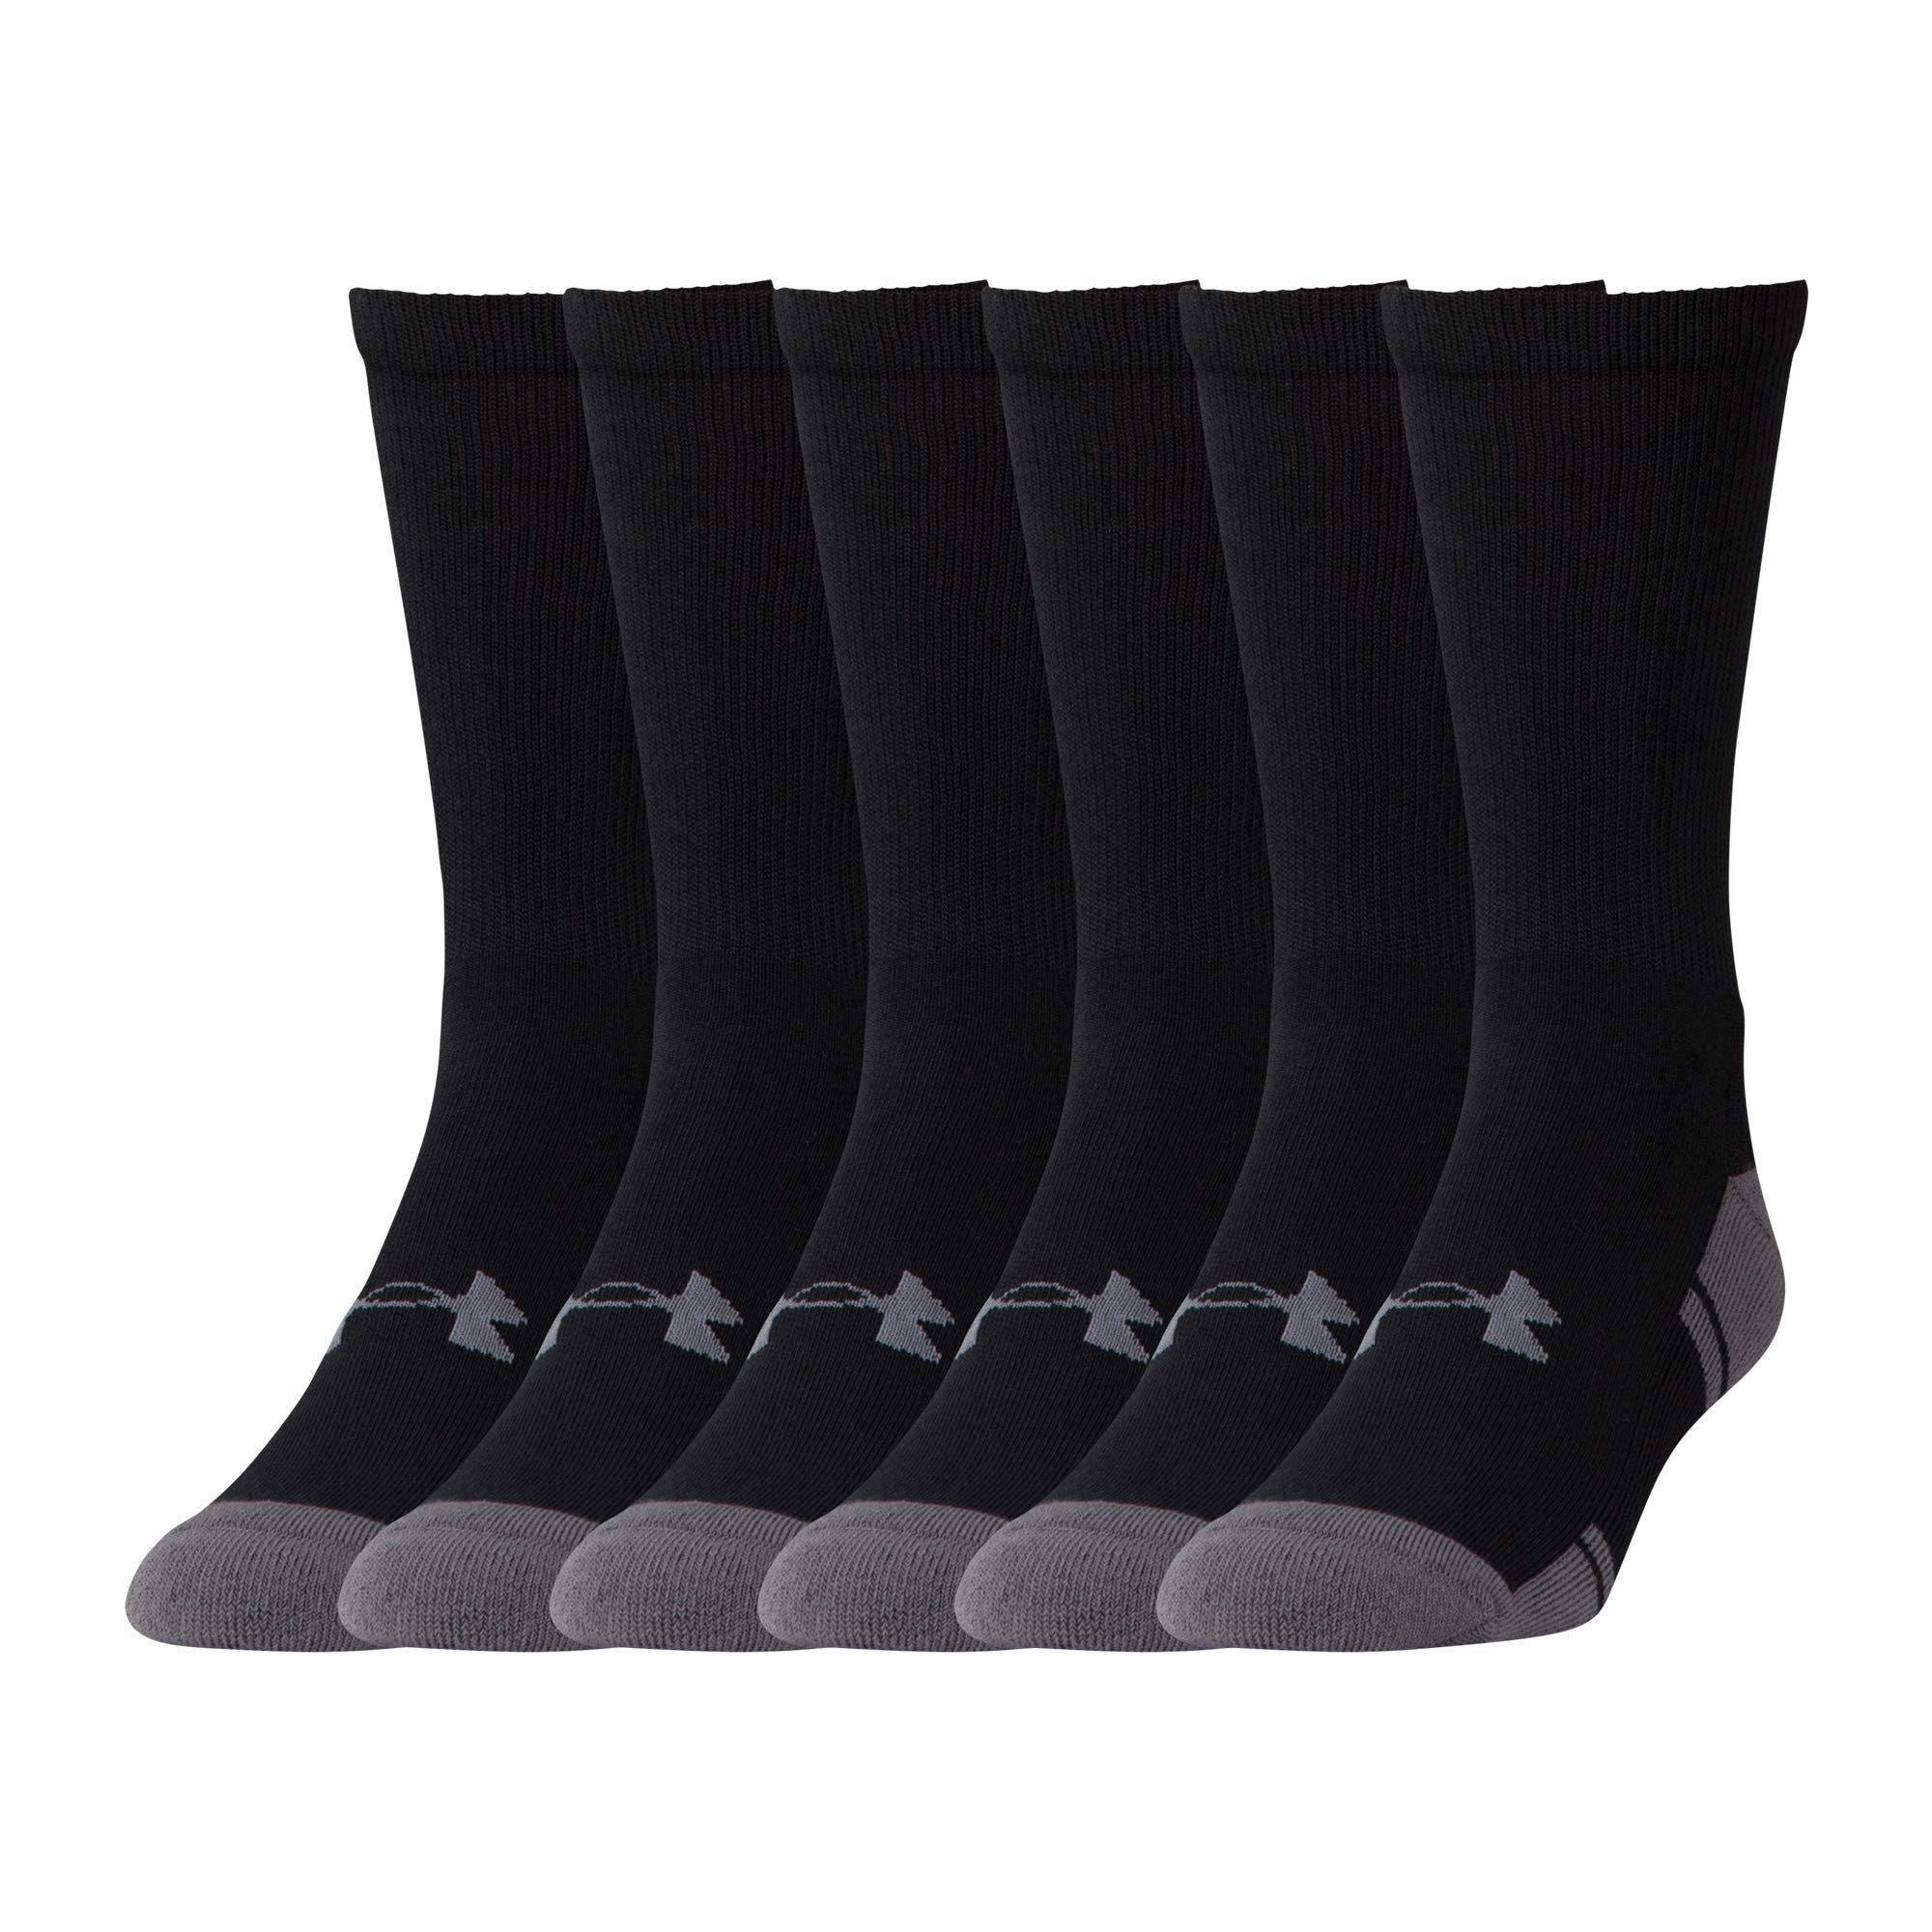 Under Armour Resistor 3.0 Crew Athletic Socks (6 Pack), Black/Graphite, Medium by Under Armour